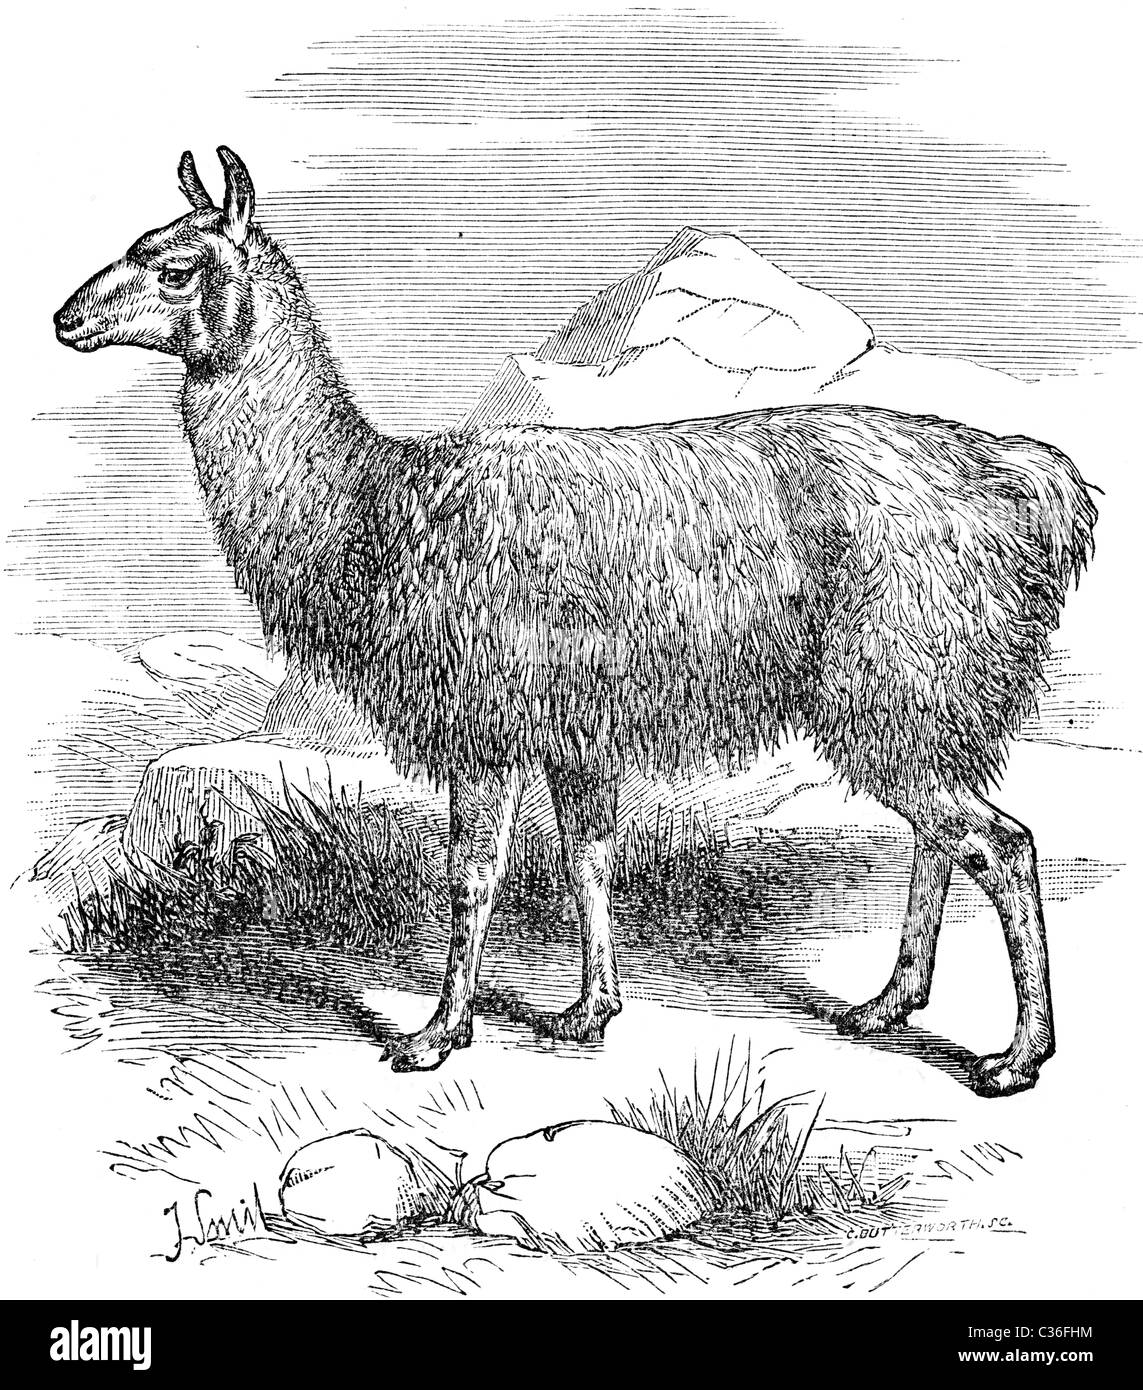 19th Century book illustration, taken from 9th edition (1875) of Encyclopaedia Britannica, of Llama - Stock Image